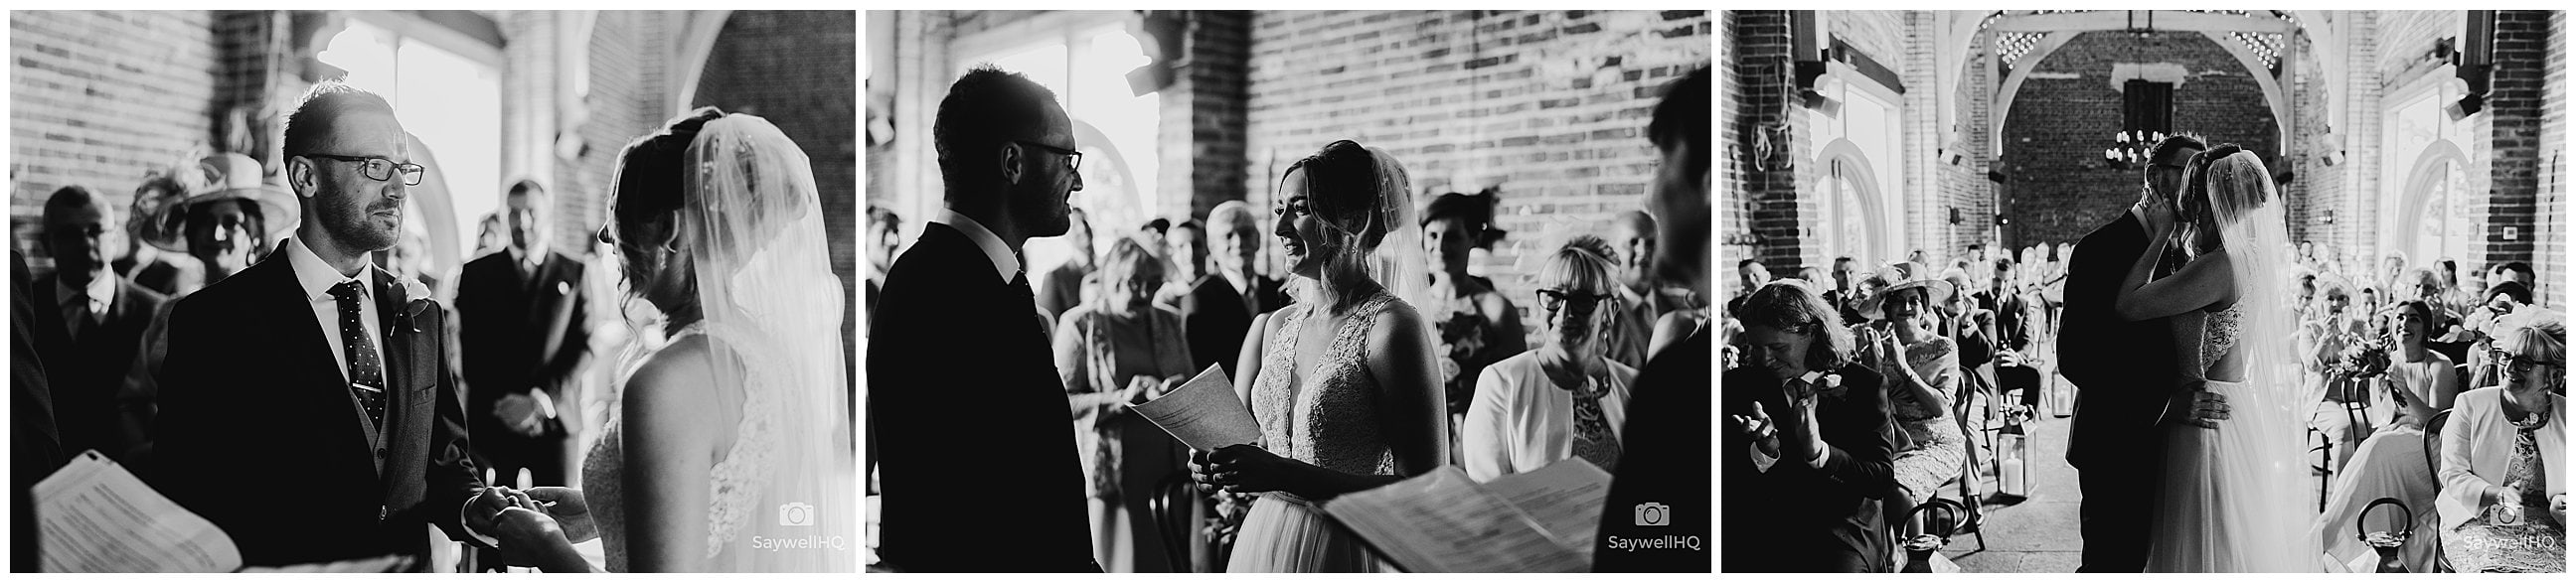 Wedding Photography at Hazel Gap Barn – bride and groom look lovinly at each other during the wedding ceremony at hazel gap barns